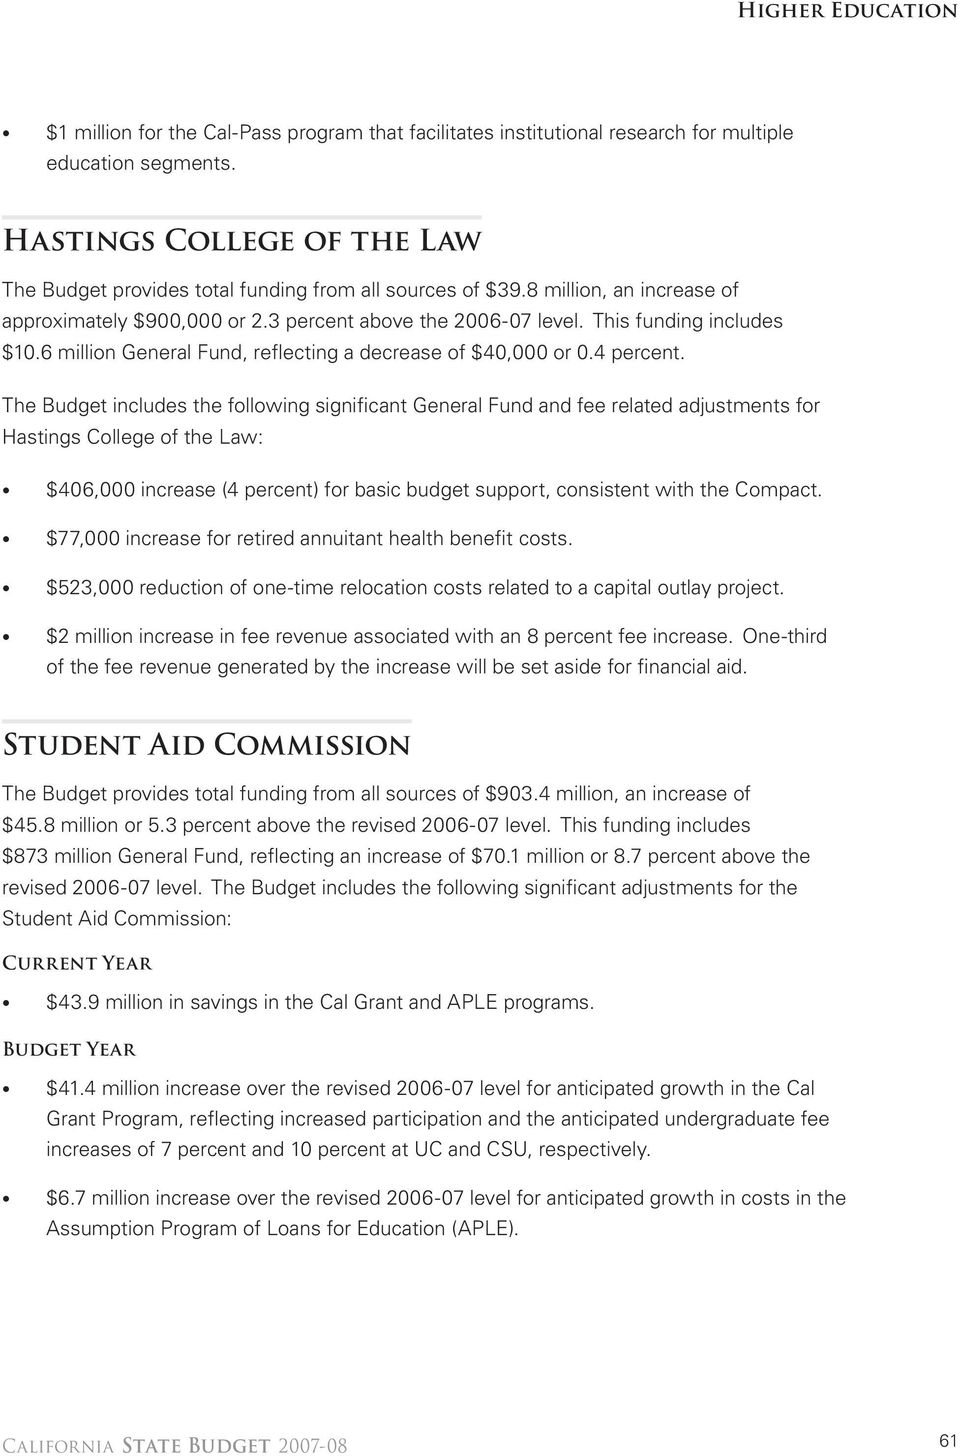 The Budget includes the following significant General Fund and fee related adjustments for Hastings College of the Law: $406,000 increase (4 percent) for basic budget support, consistent with the